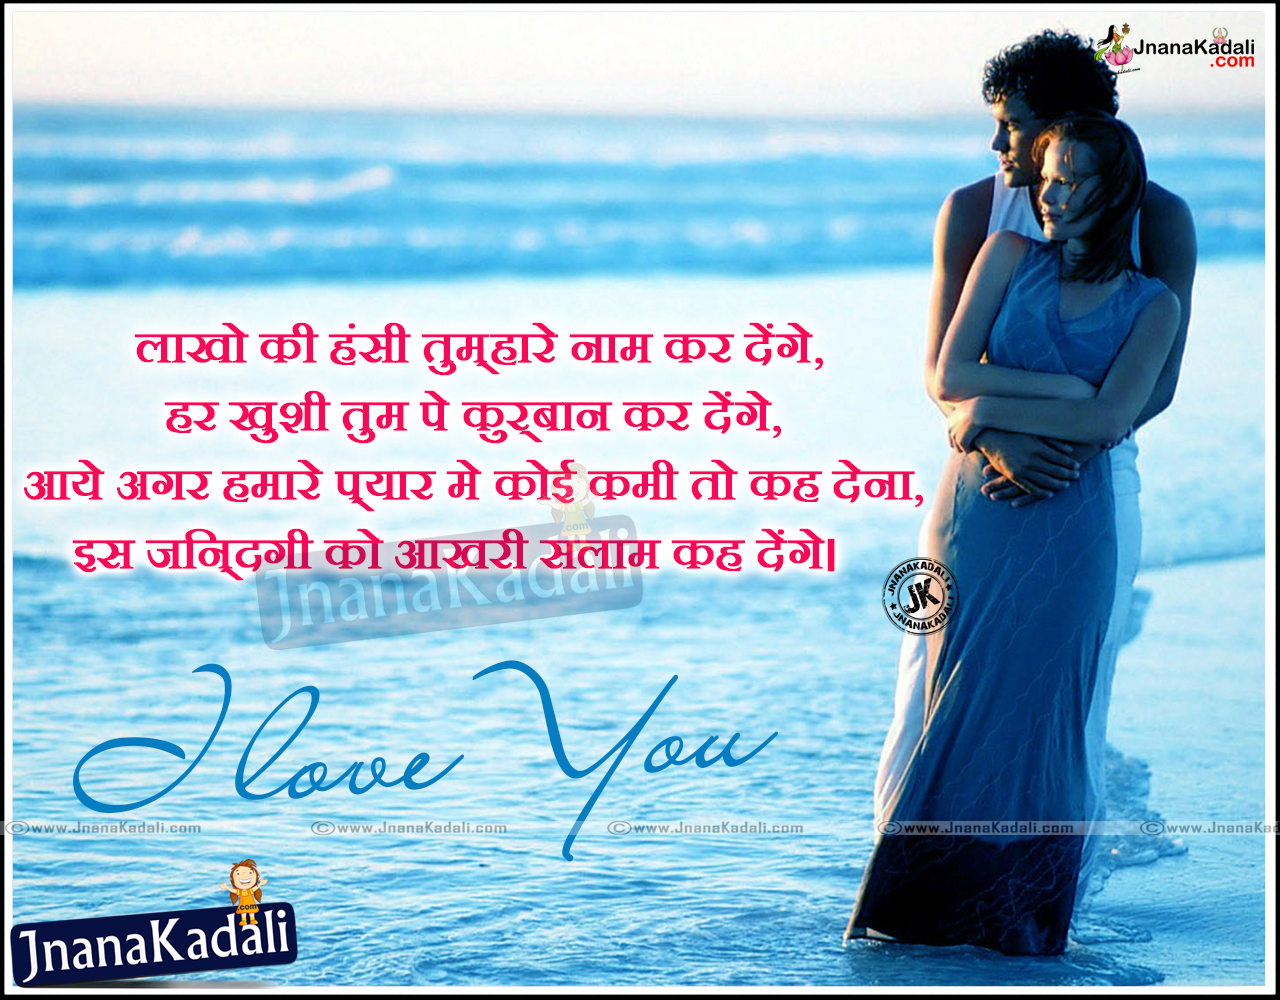 Collections of True Love Quotes In Hindi, - Valentine Love Quotes